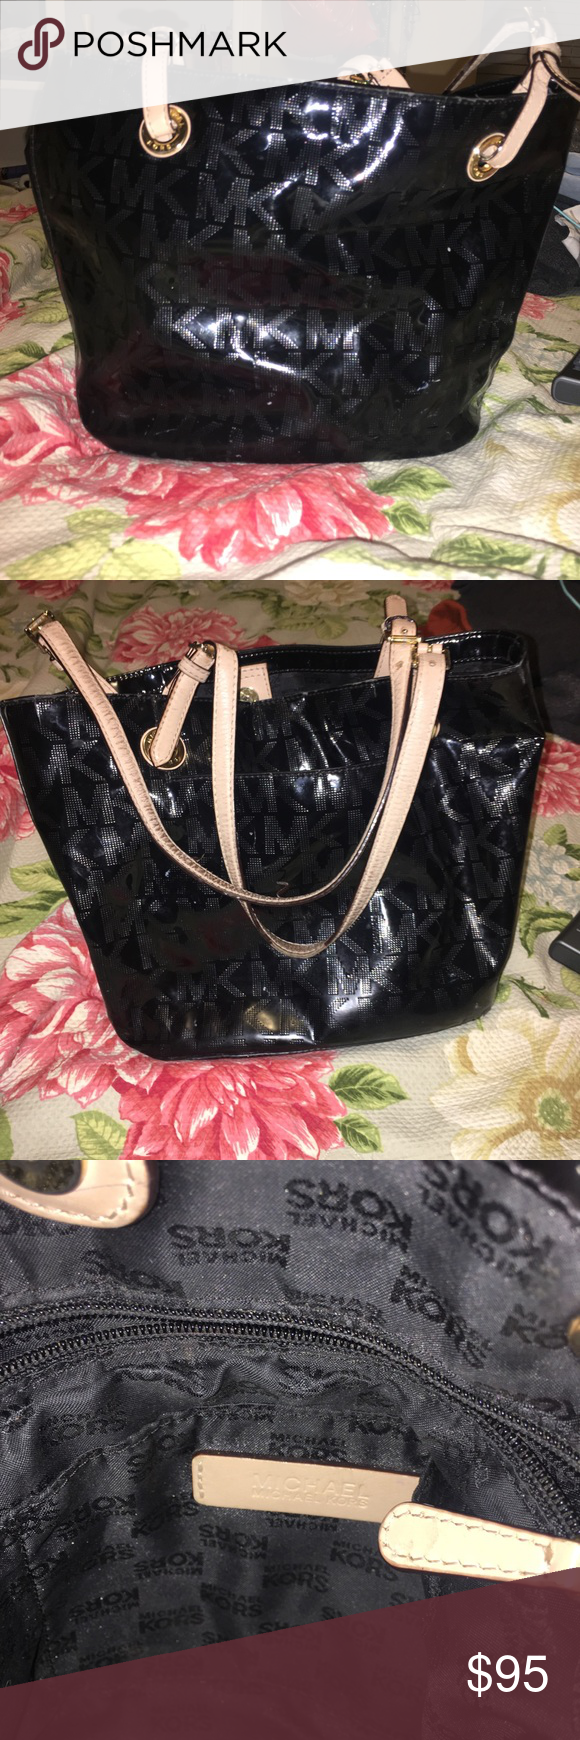 Micheal Kors purse 100% authentic , a few minor flaws as pictured. Still in good condition. Reasonable offers accepted. Michael Kors Bags Shoulder Bags